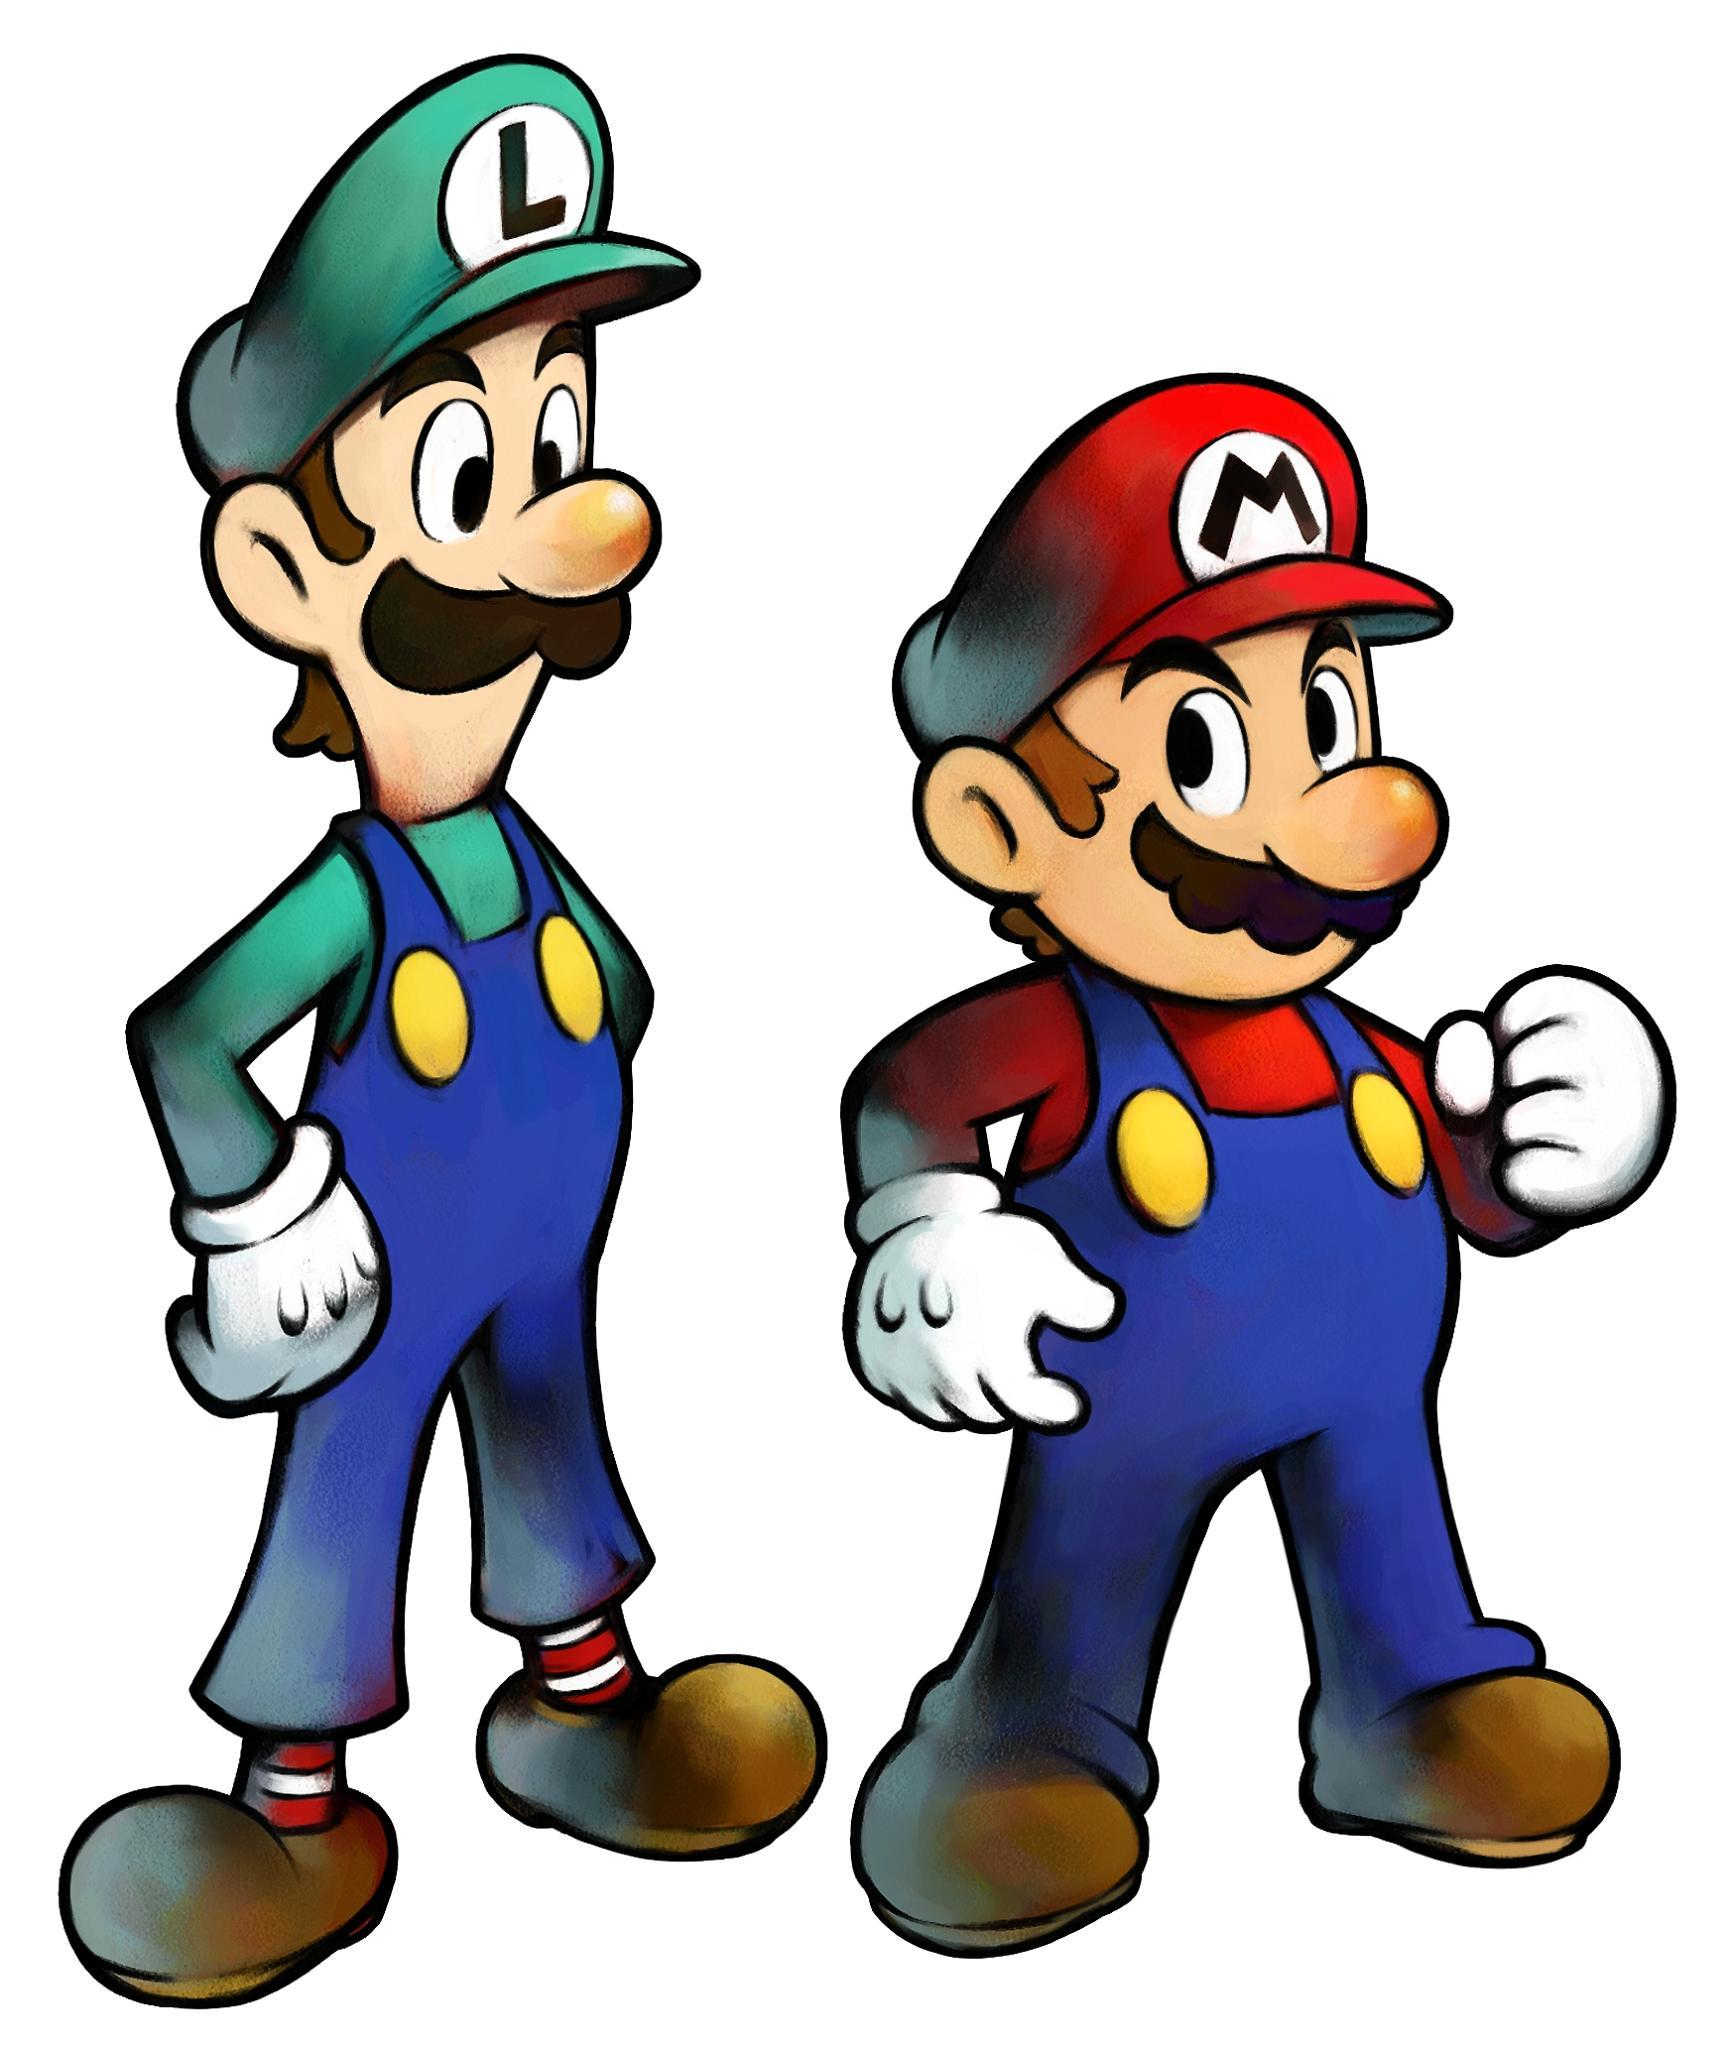 who is Mario's brother